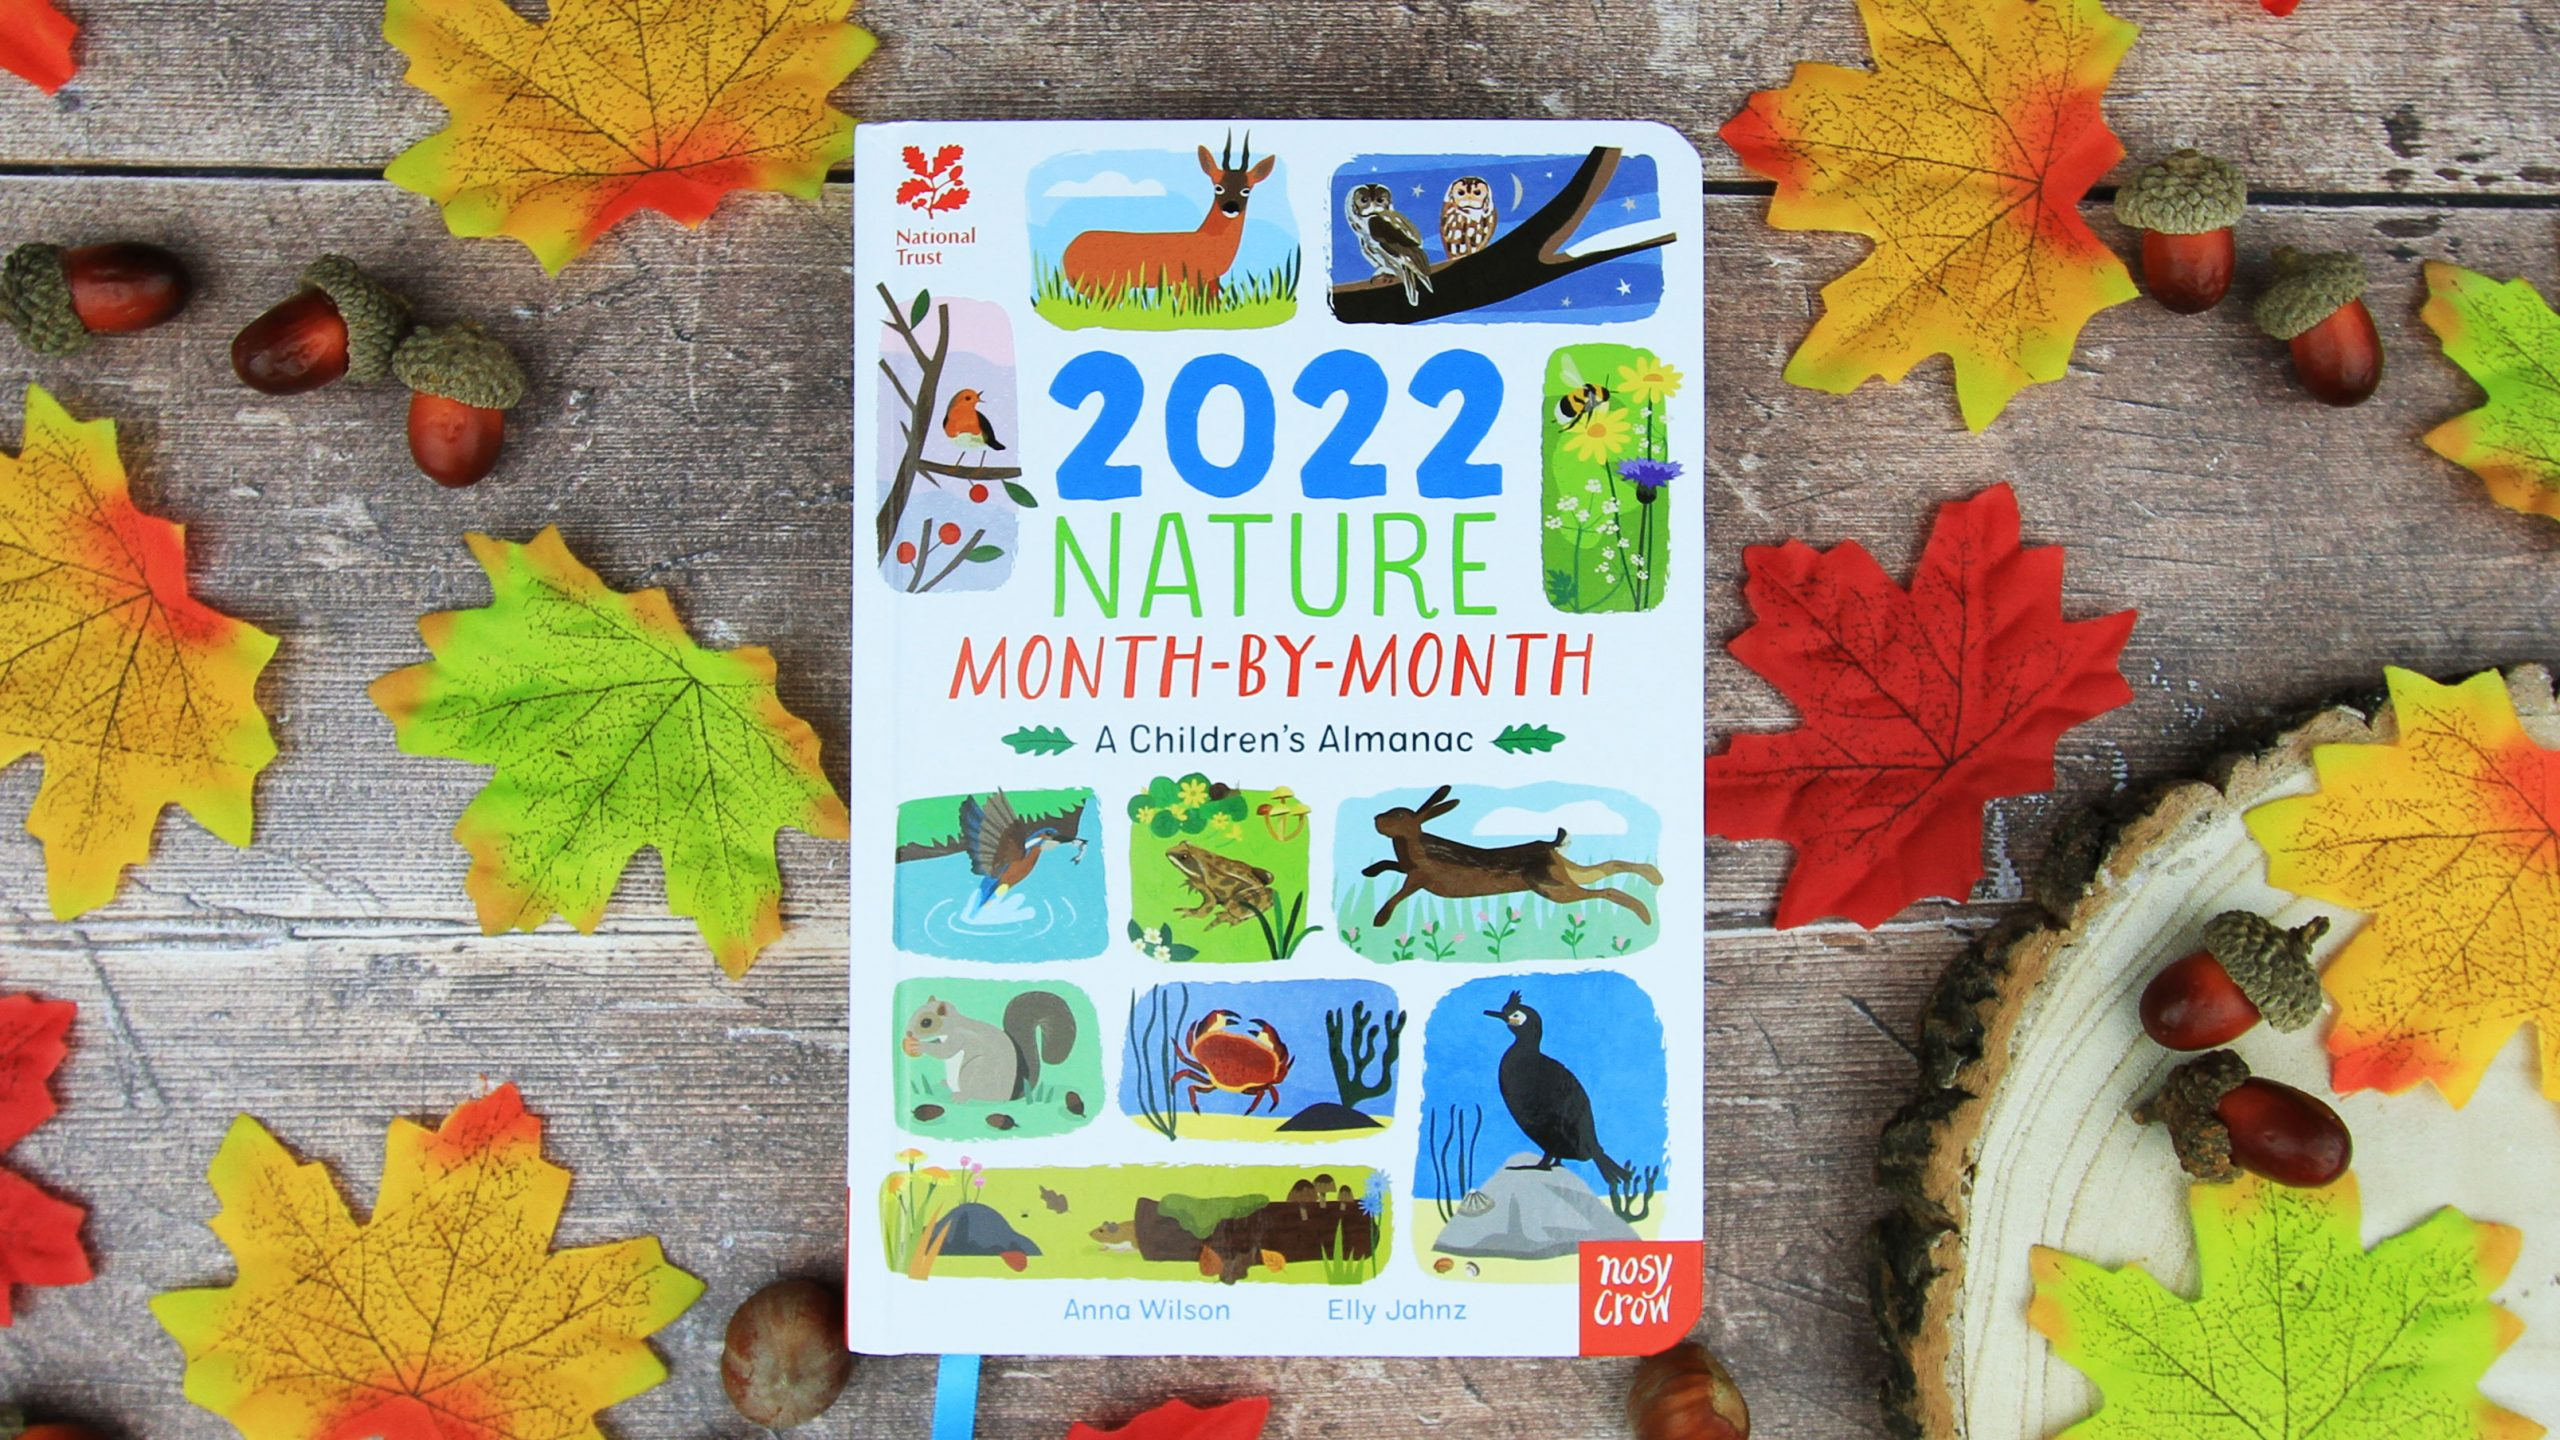 Take a look inside our 2022 Children's Almanac